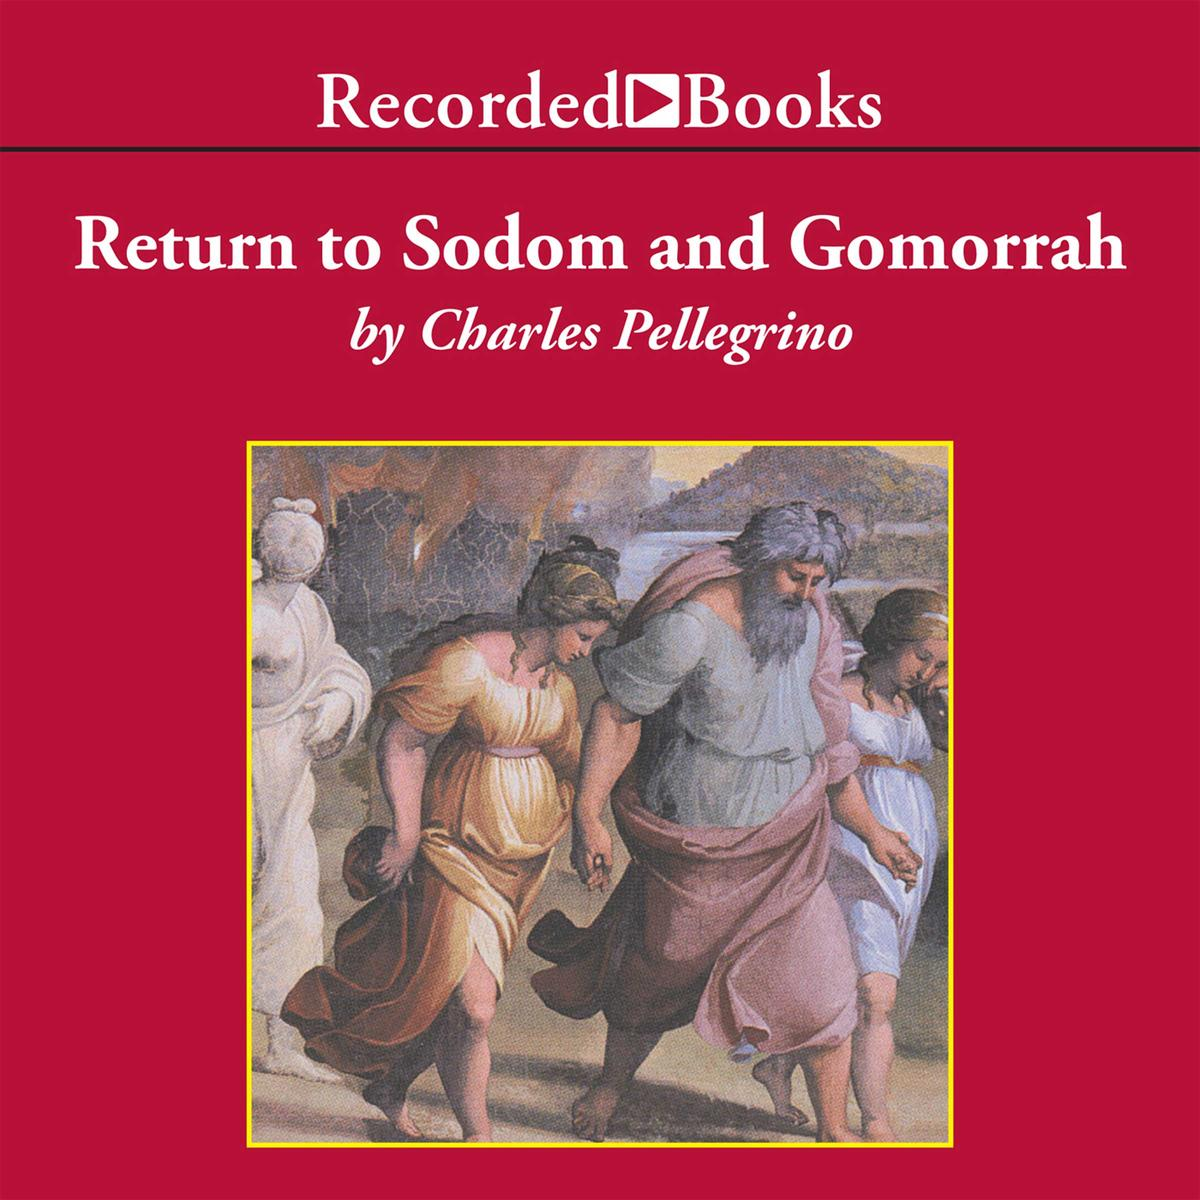 Return to Sodom and Gomorrah - Audiobook